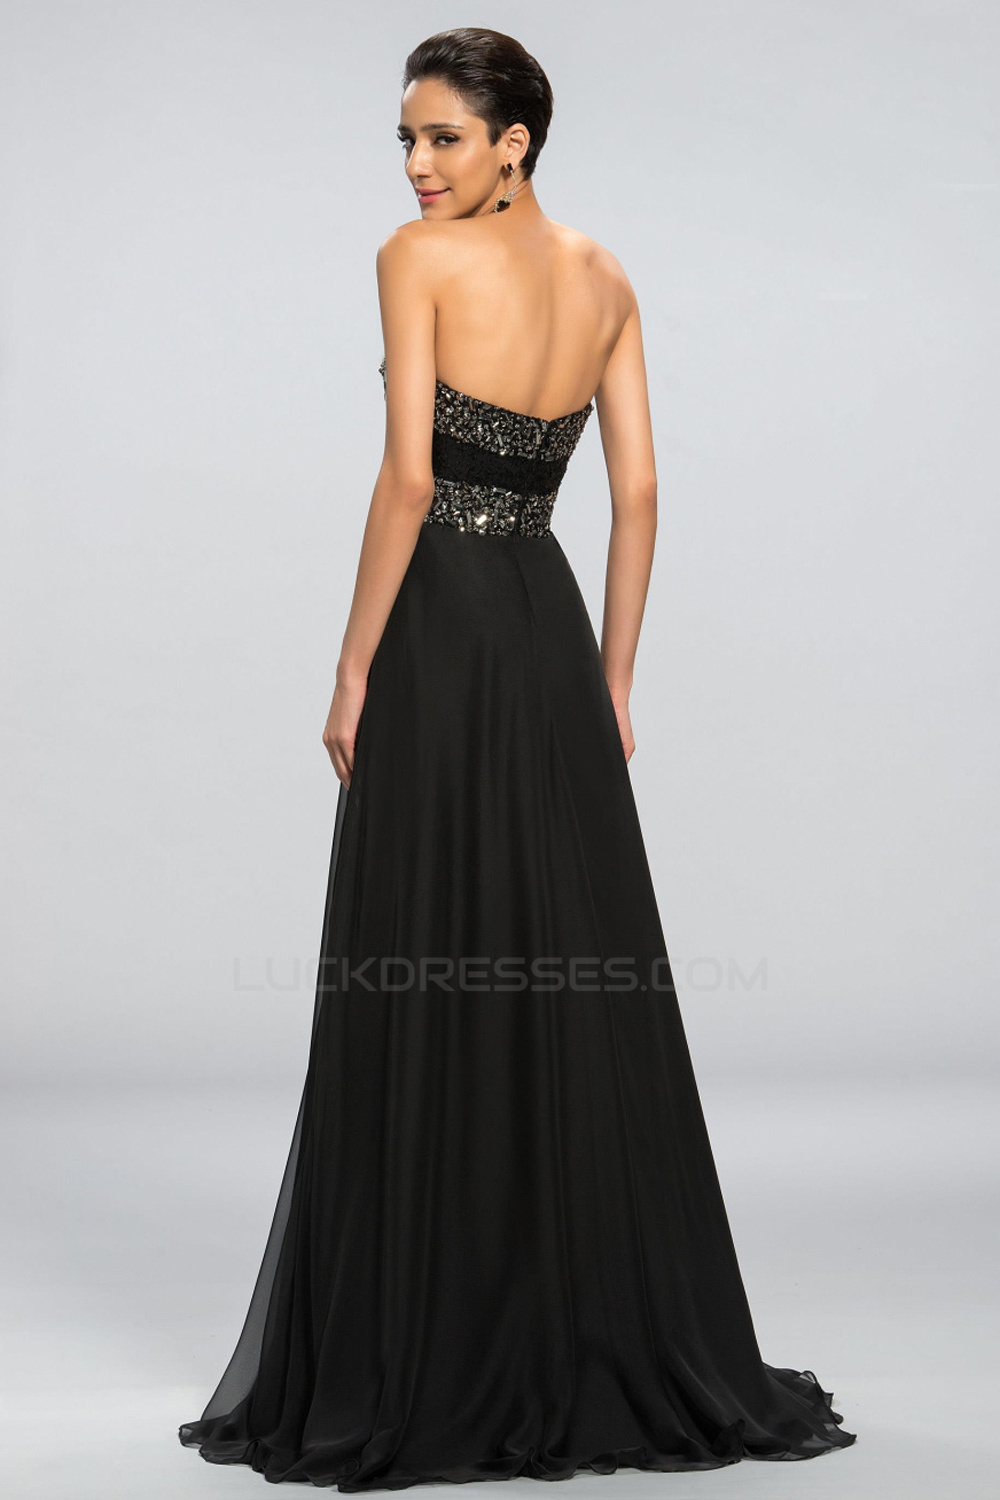 Sweetheart Beaded Long Black Chiffon Prom Evening Formal Party